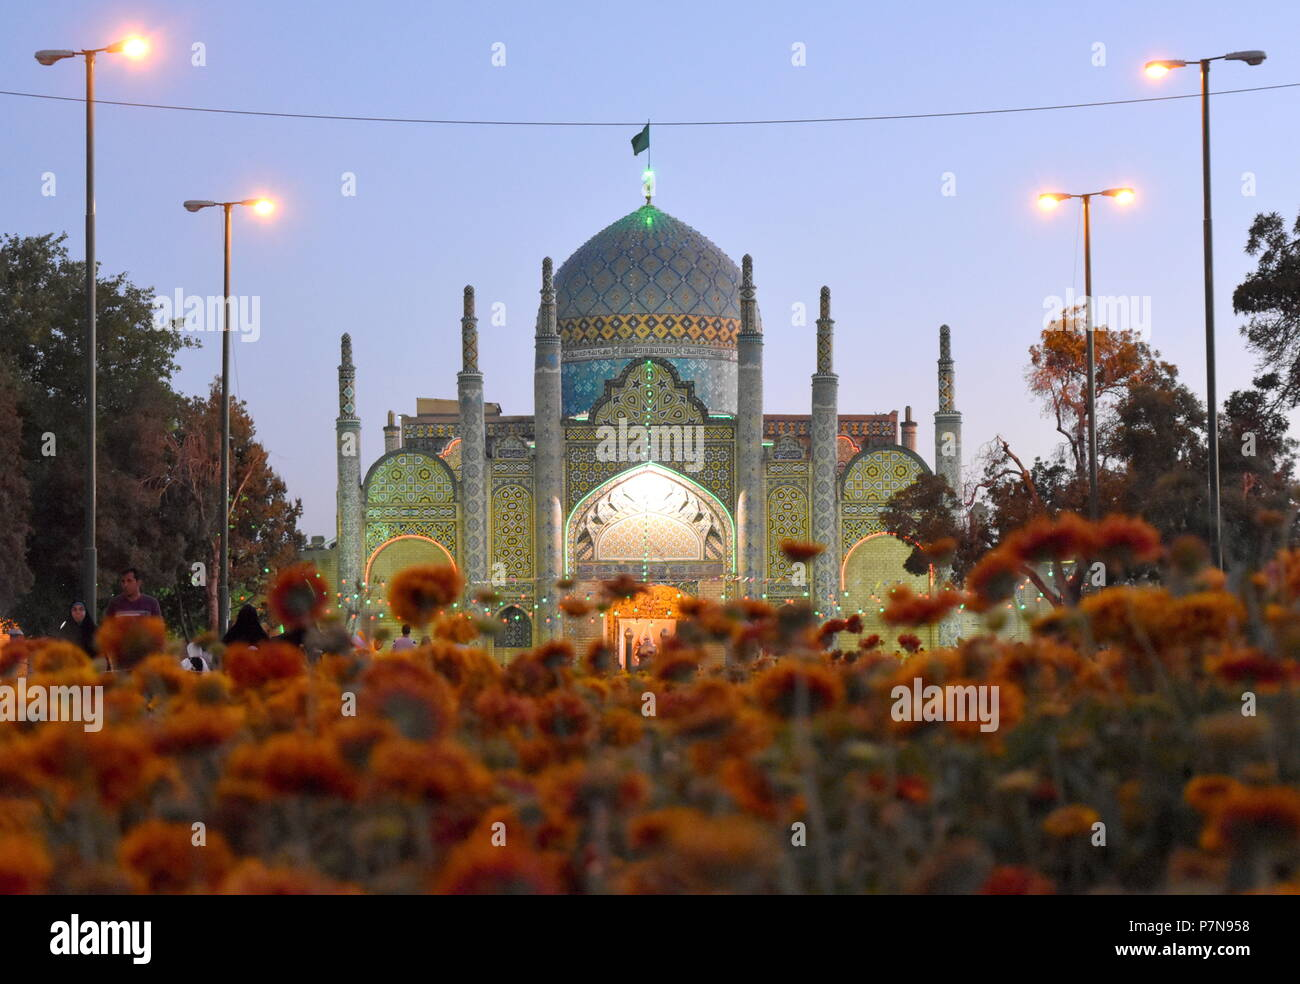 Beautiful old Islamic Shia mosque and shrine in Qazvin, Iran, at dusk - an example of Silk Road and Middle East exquisite architecture and art - Stock Image